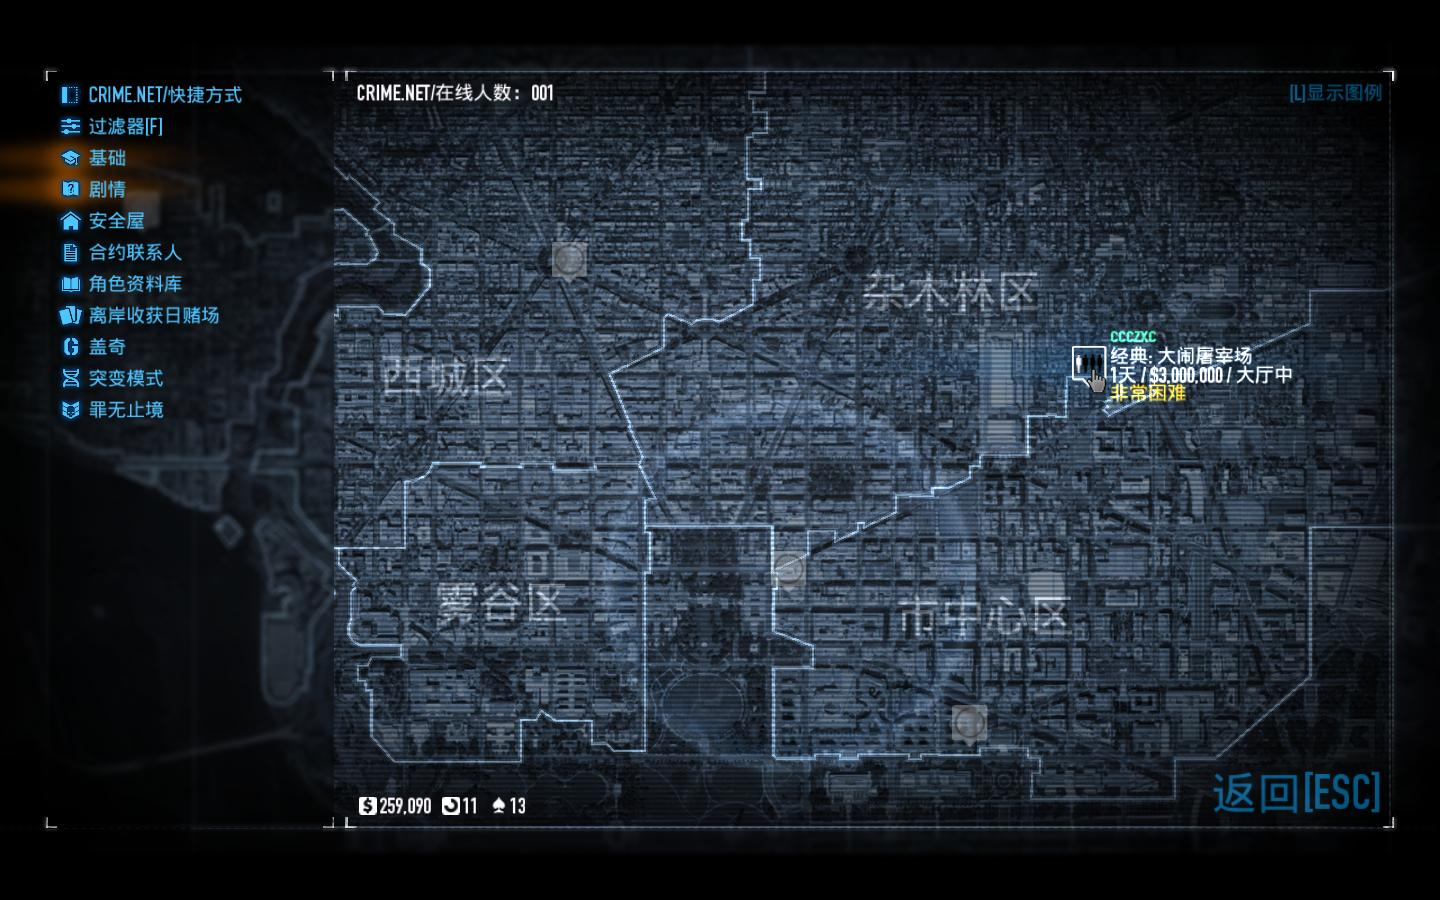 payday2_win32_release 2017-12-15 13-48-29-73.jpg